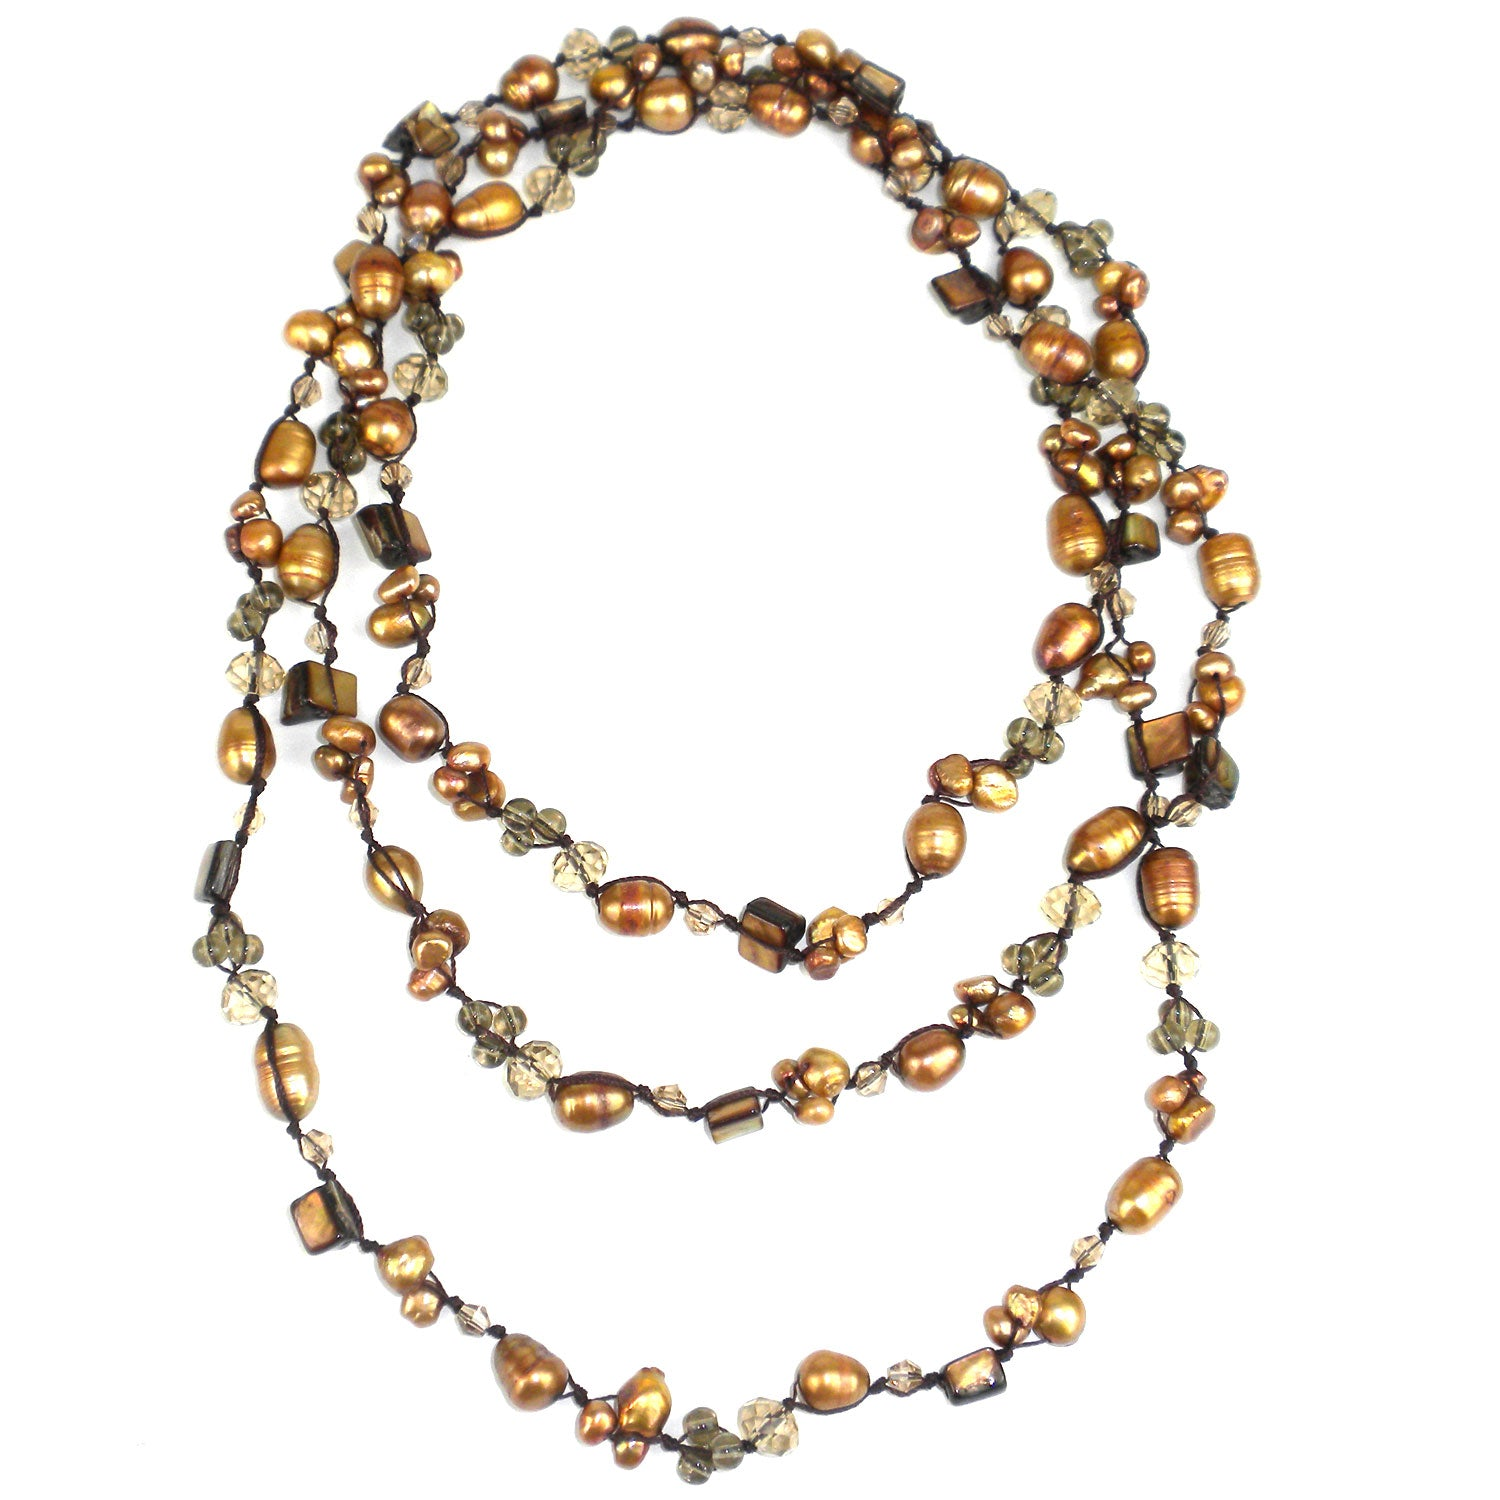 Hand knotted Gold Freshwater Pearl Necklace with Bead Accents